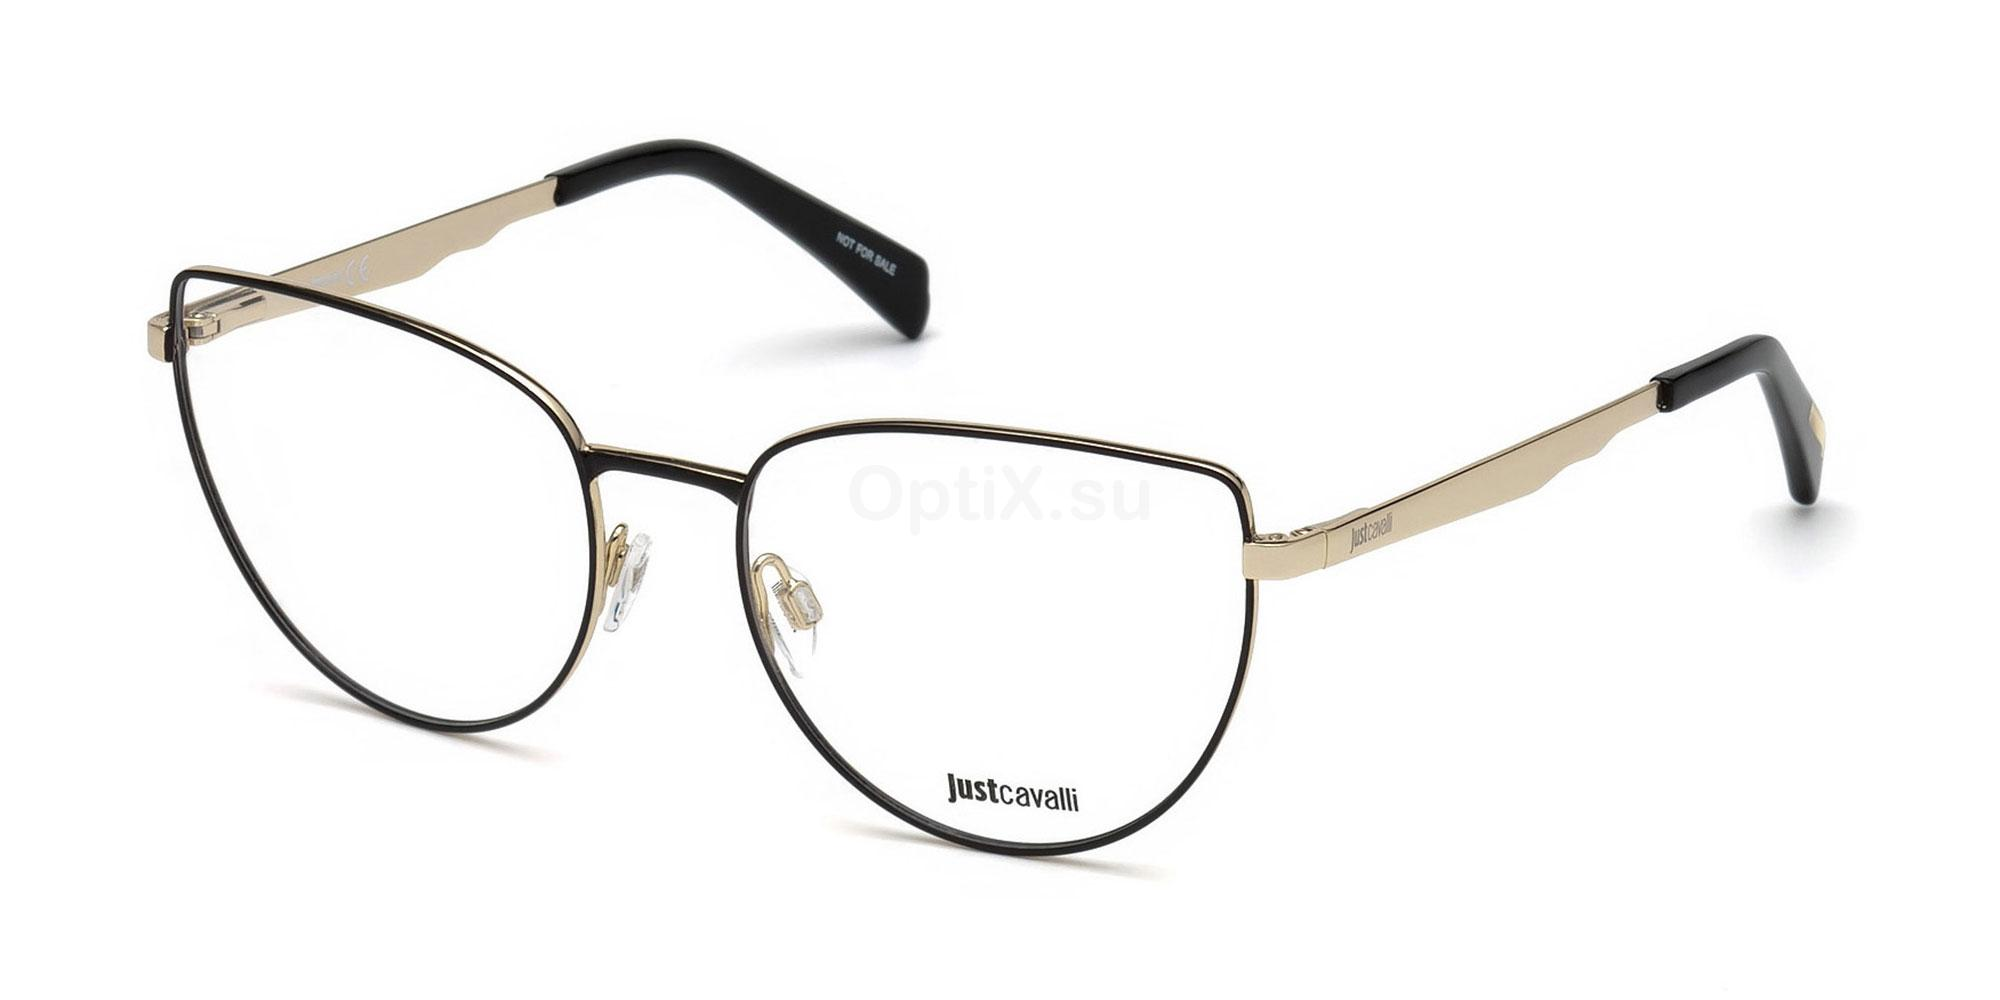 005 JC0850 Glasses, Just Cavalli